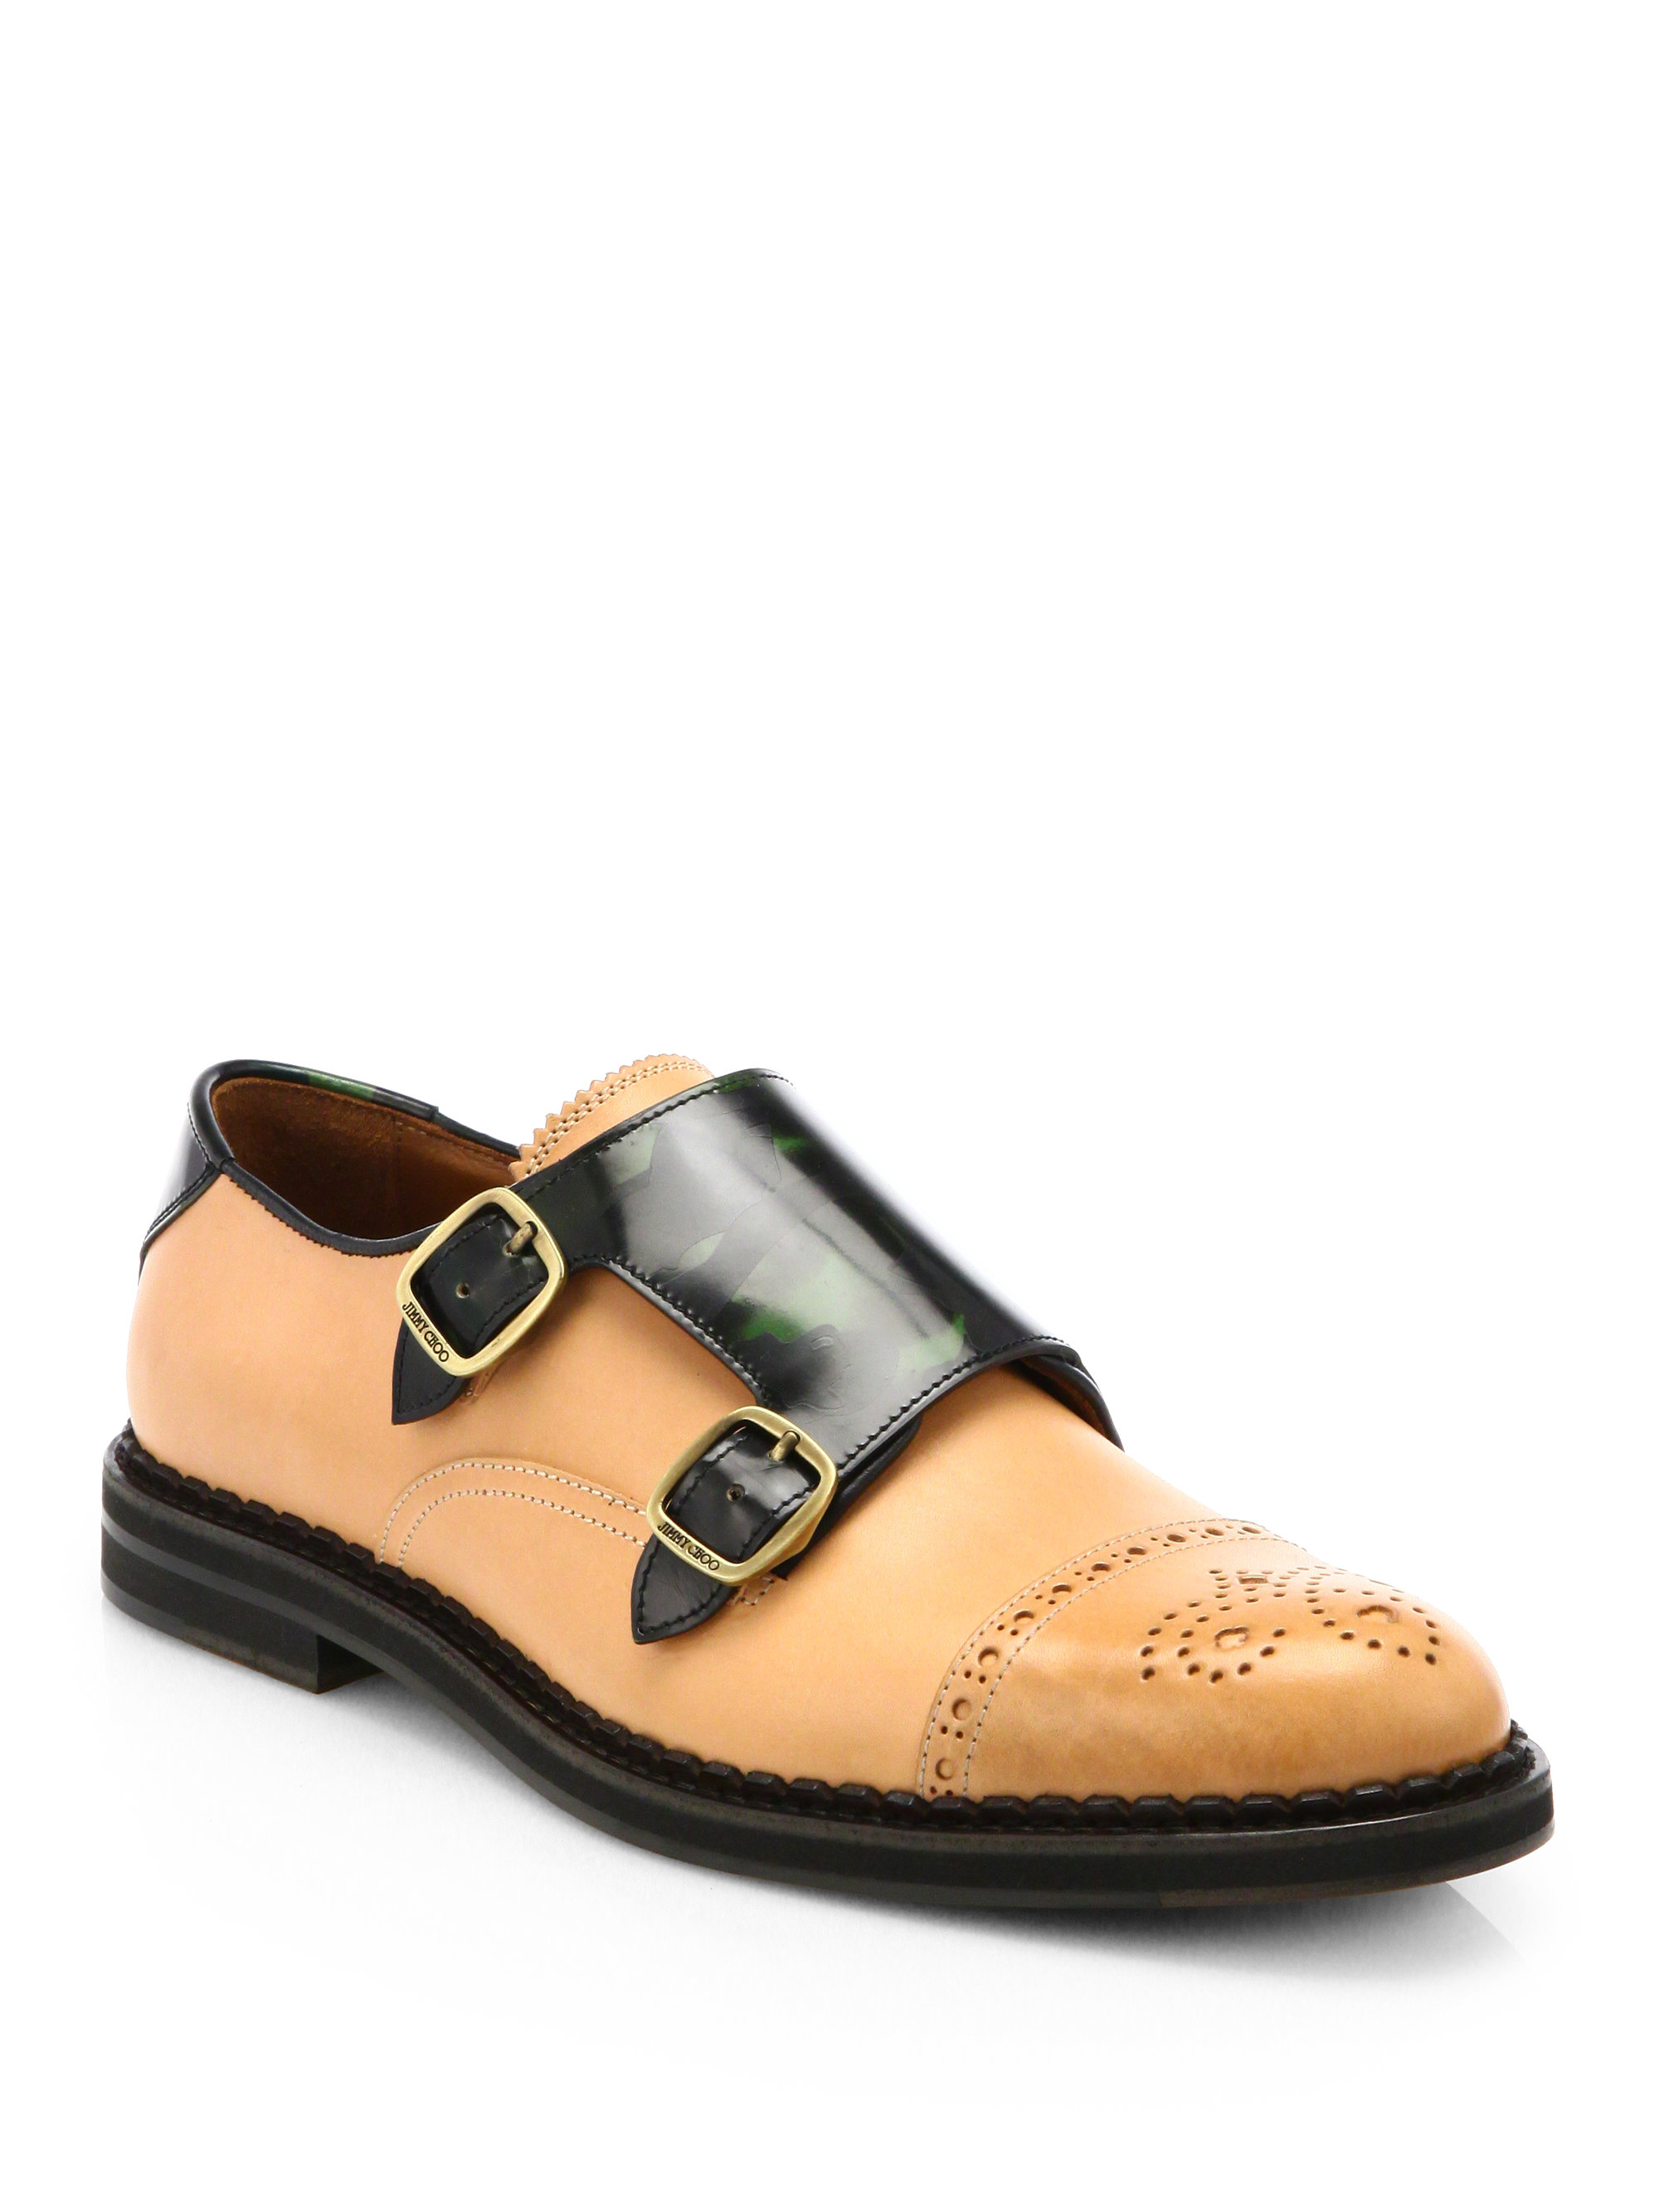 John Lobb Shoes >> Jimmy Choo Williams Monk Strap Dress Shoes in Brown for Men - Lyst